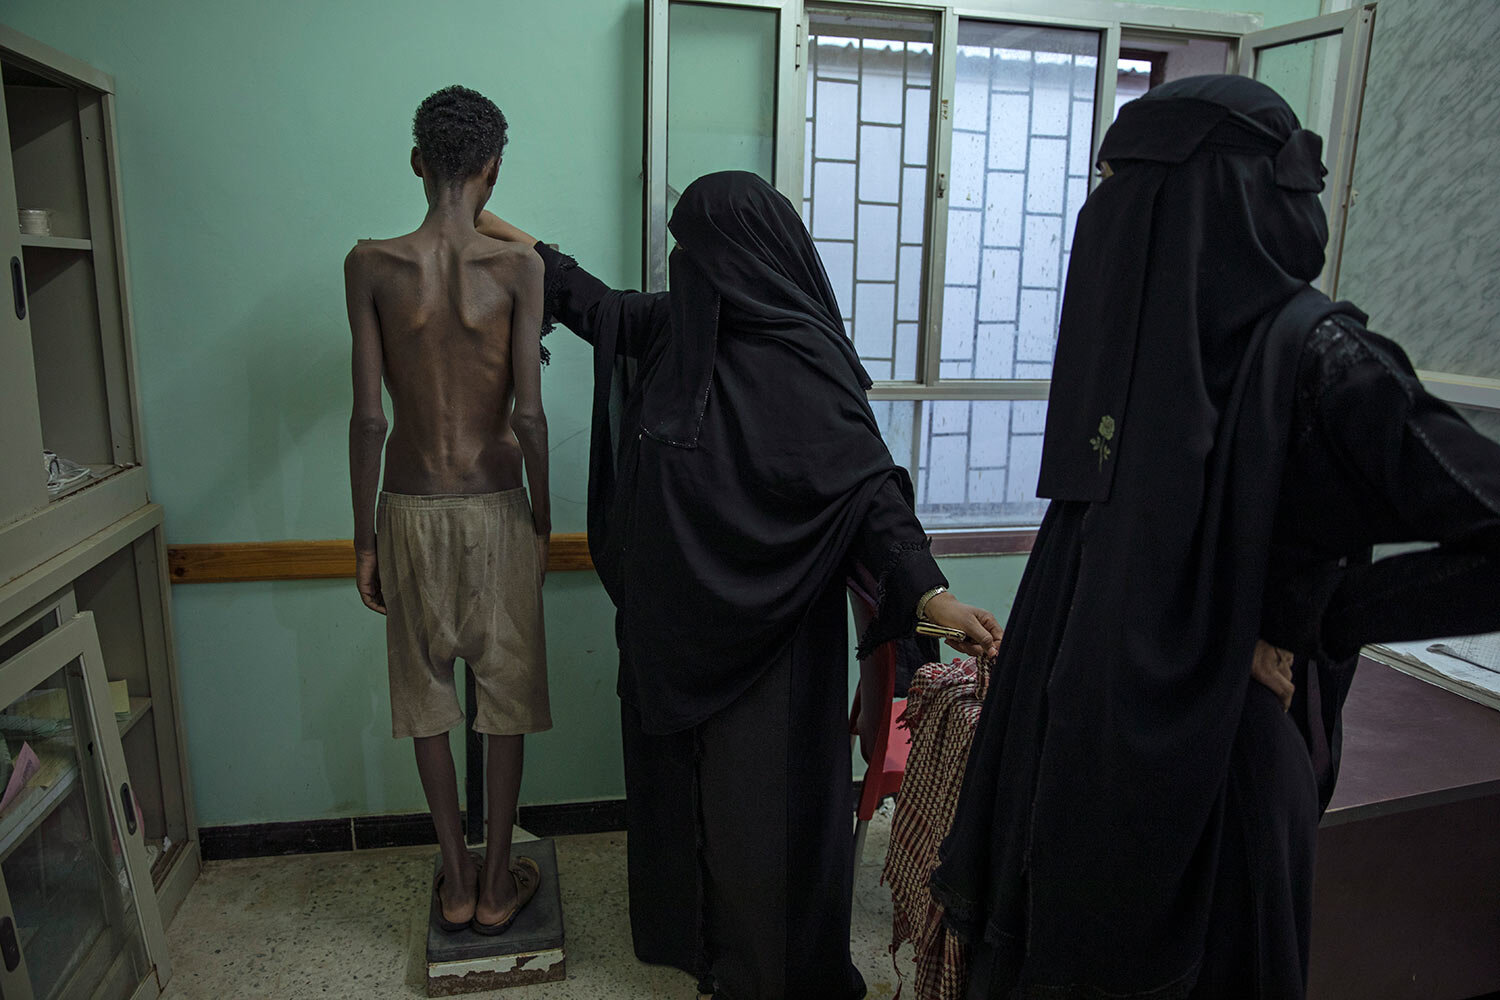 19-year-old Ethiopian migrant Mohammed Hussein, who is severely malnourished from imprisonment by smugglers, stands on a scale at the Ras al-Ara Hospital in Lahj, Yemen. He weighs 31 kilograms (68 pounds). (AP Photo/Nariman El-Mofty)